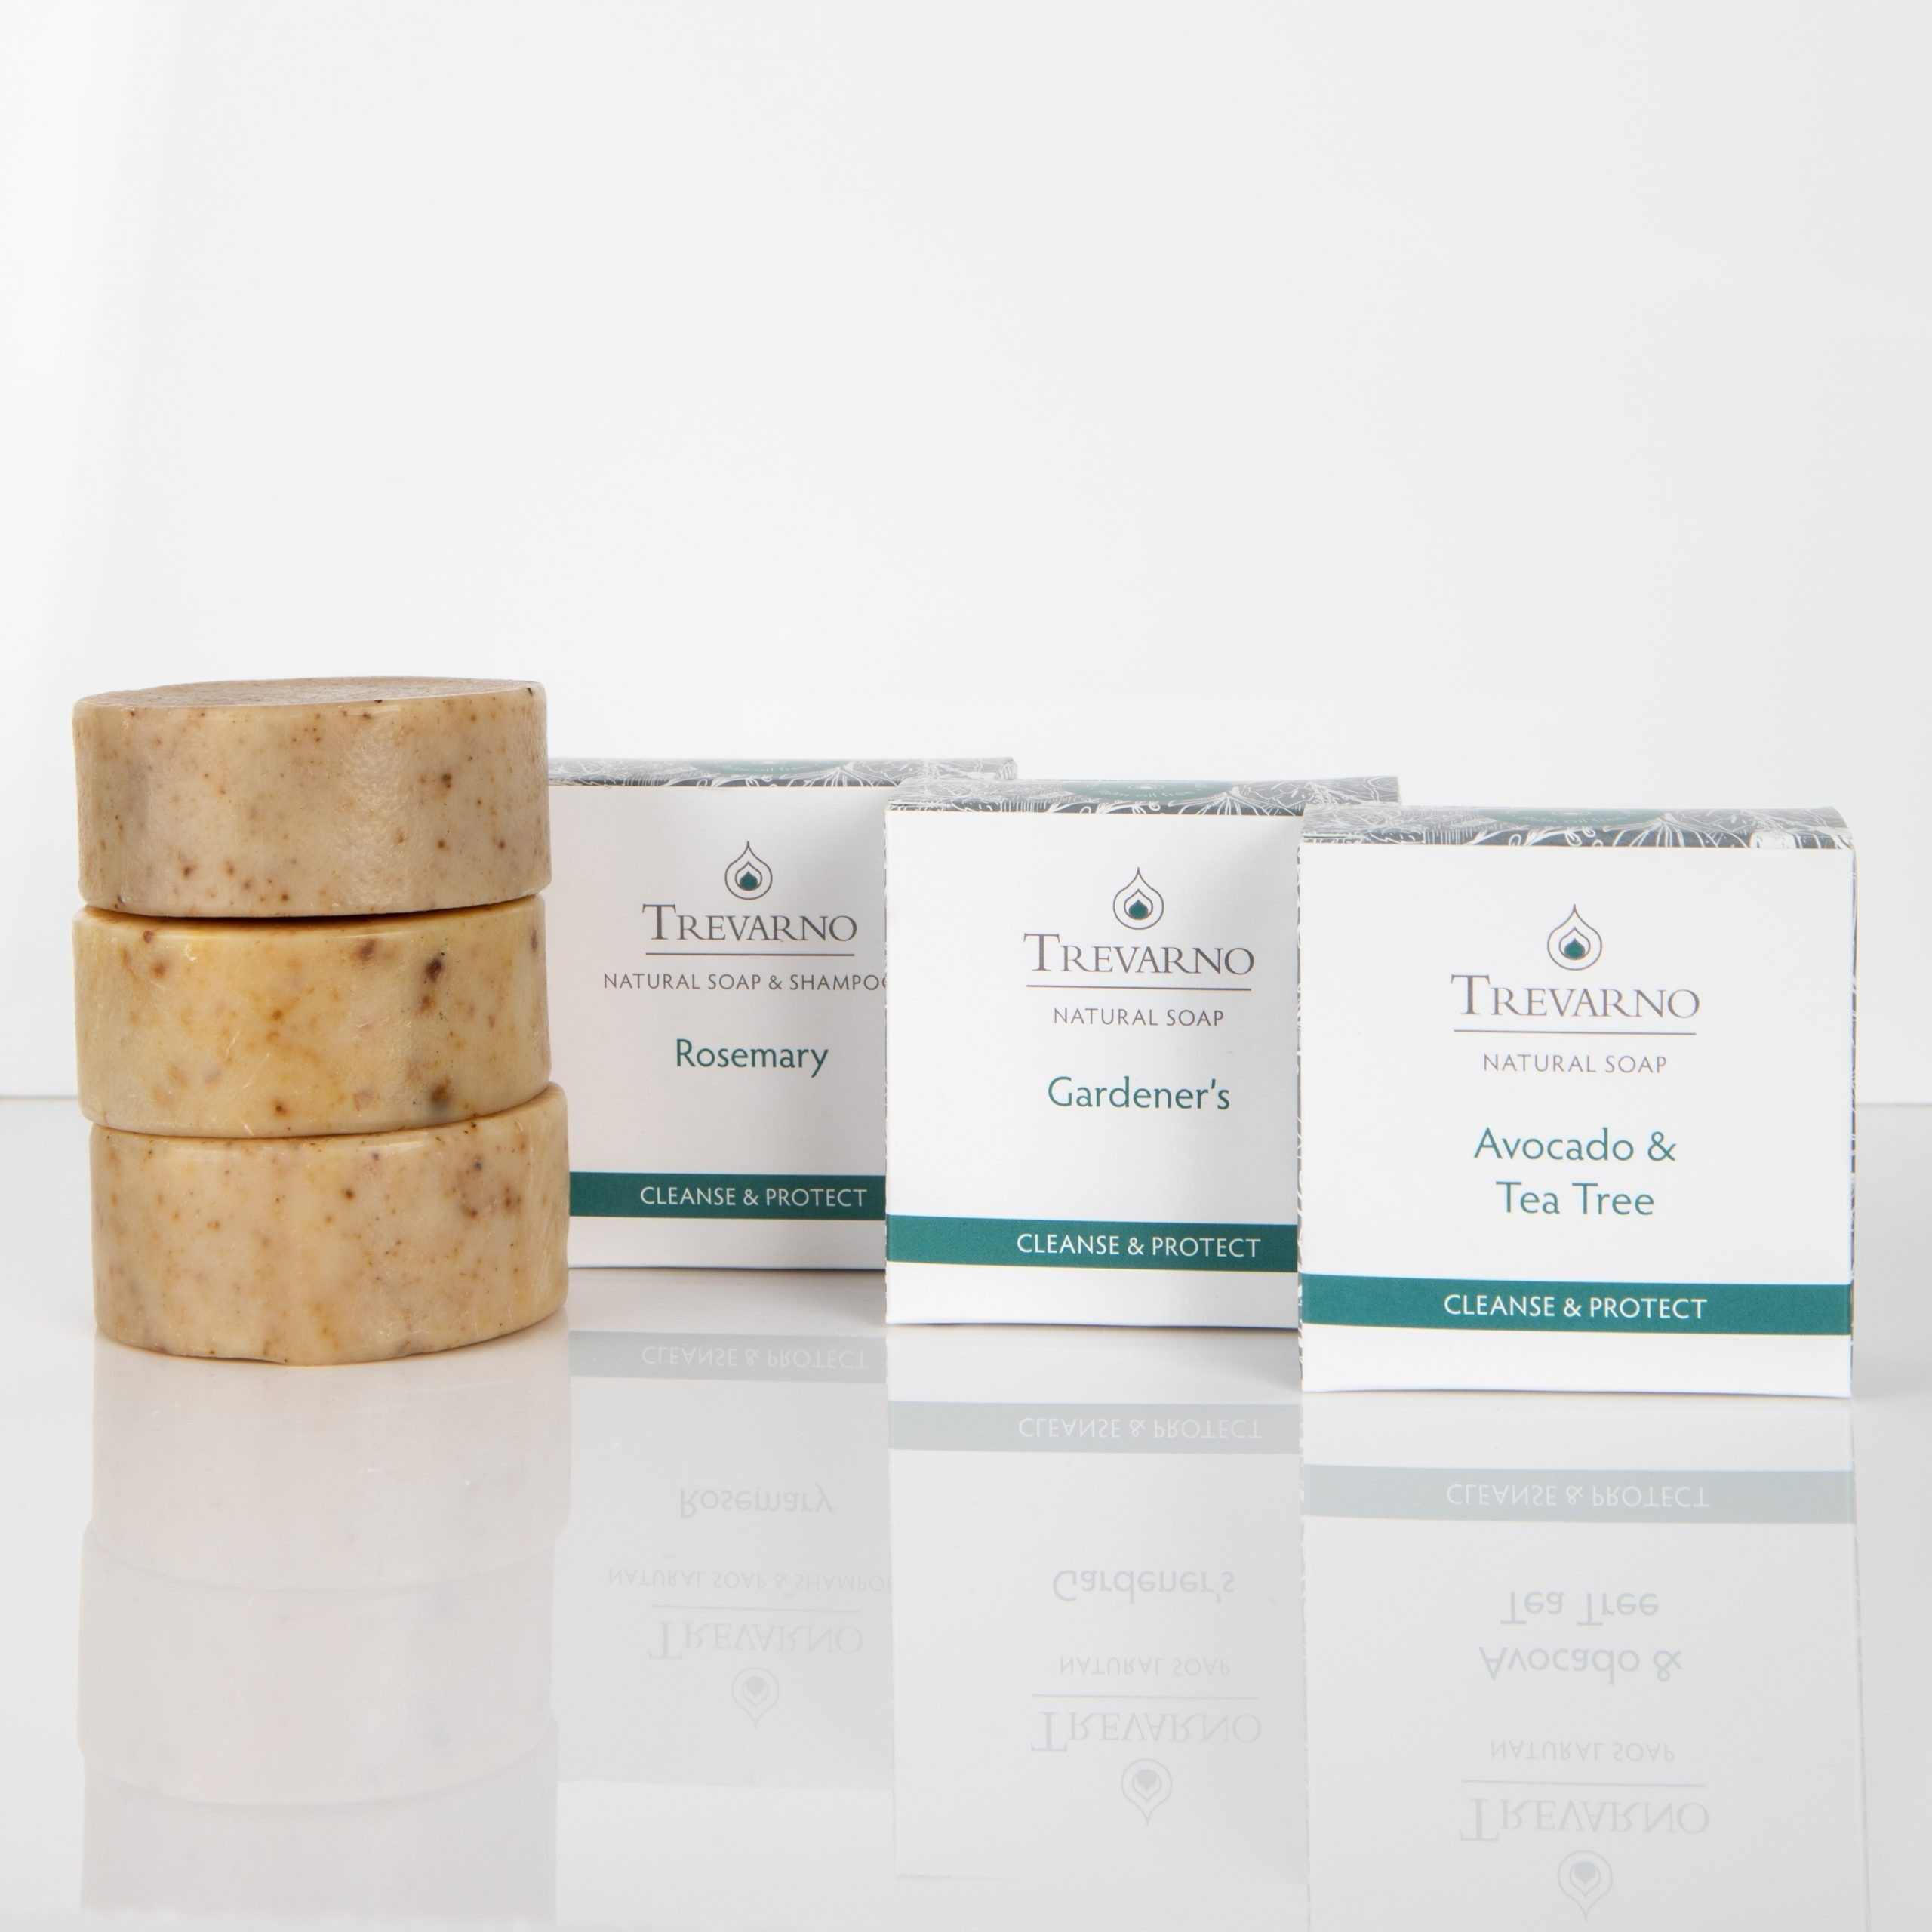 Trevarno Cleanse & Protect Trio Soaps